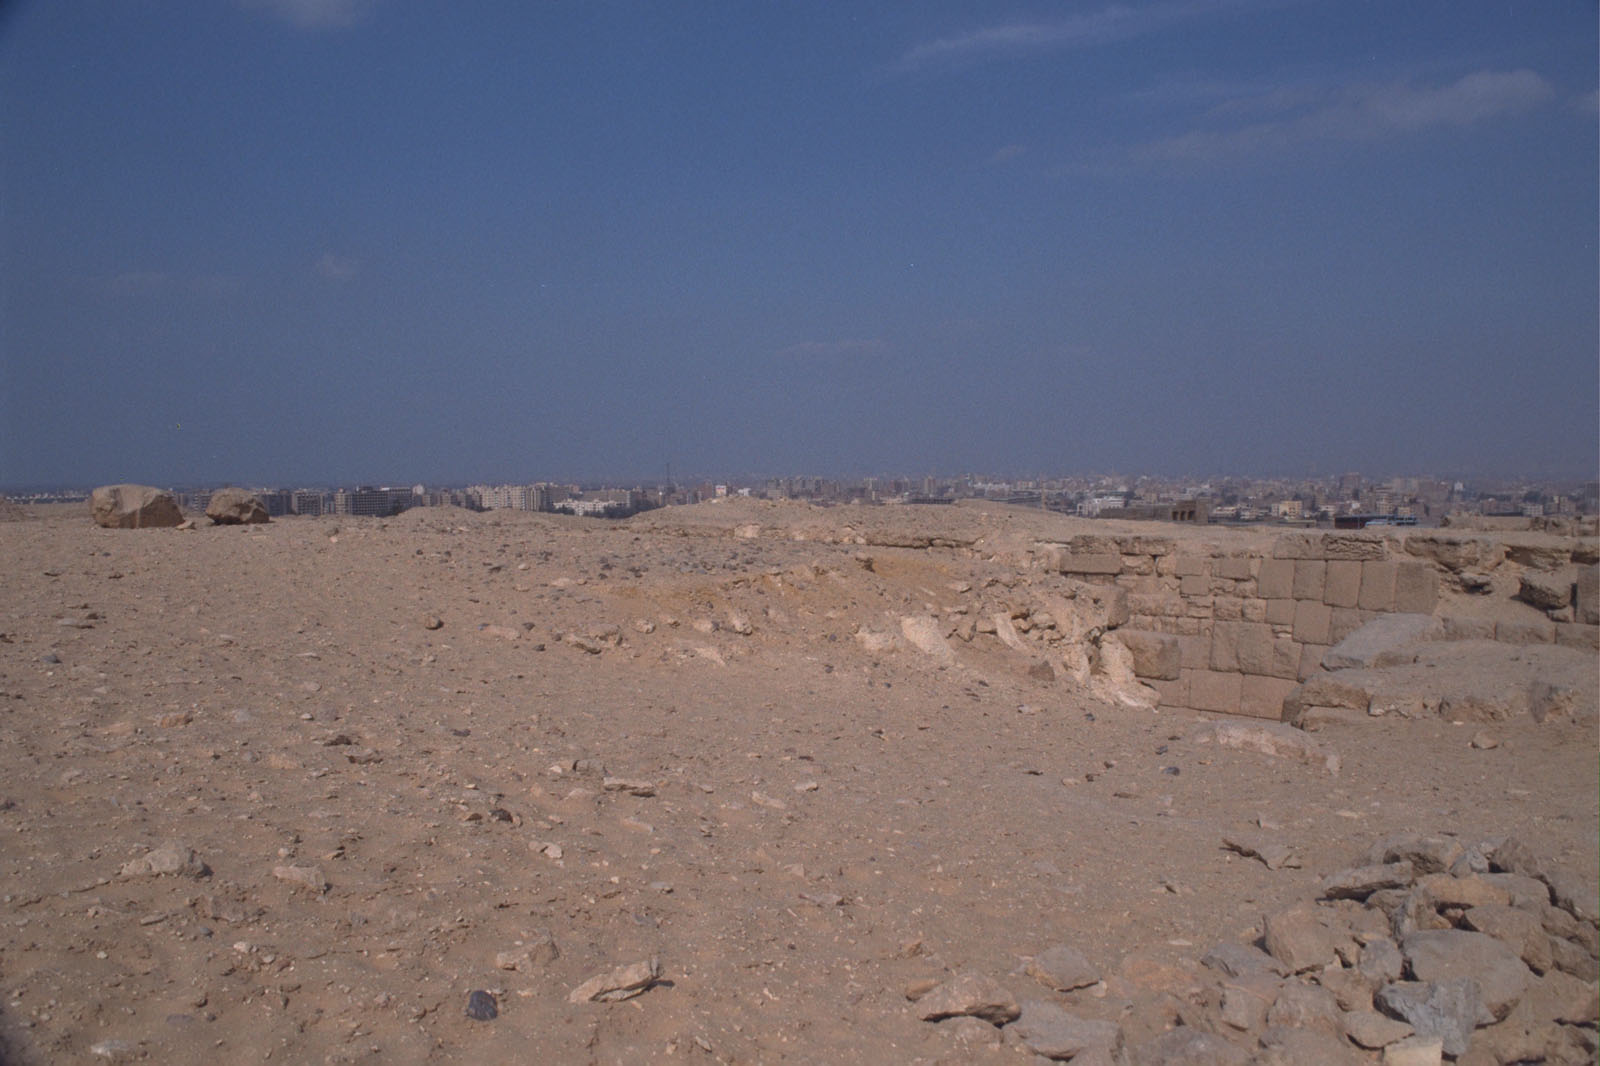 Western Cemetery: Site: Giza; View: Qedfy (G 2135a), G 2135, G 2155